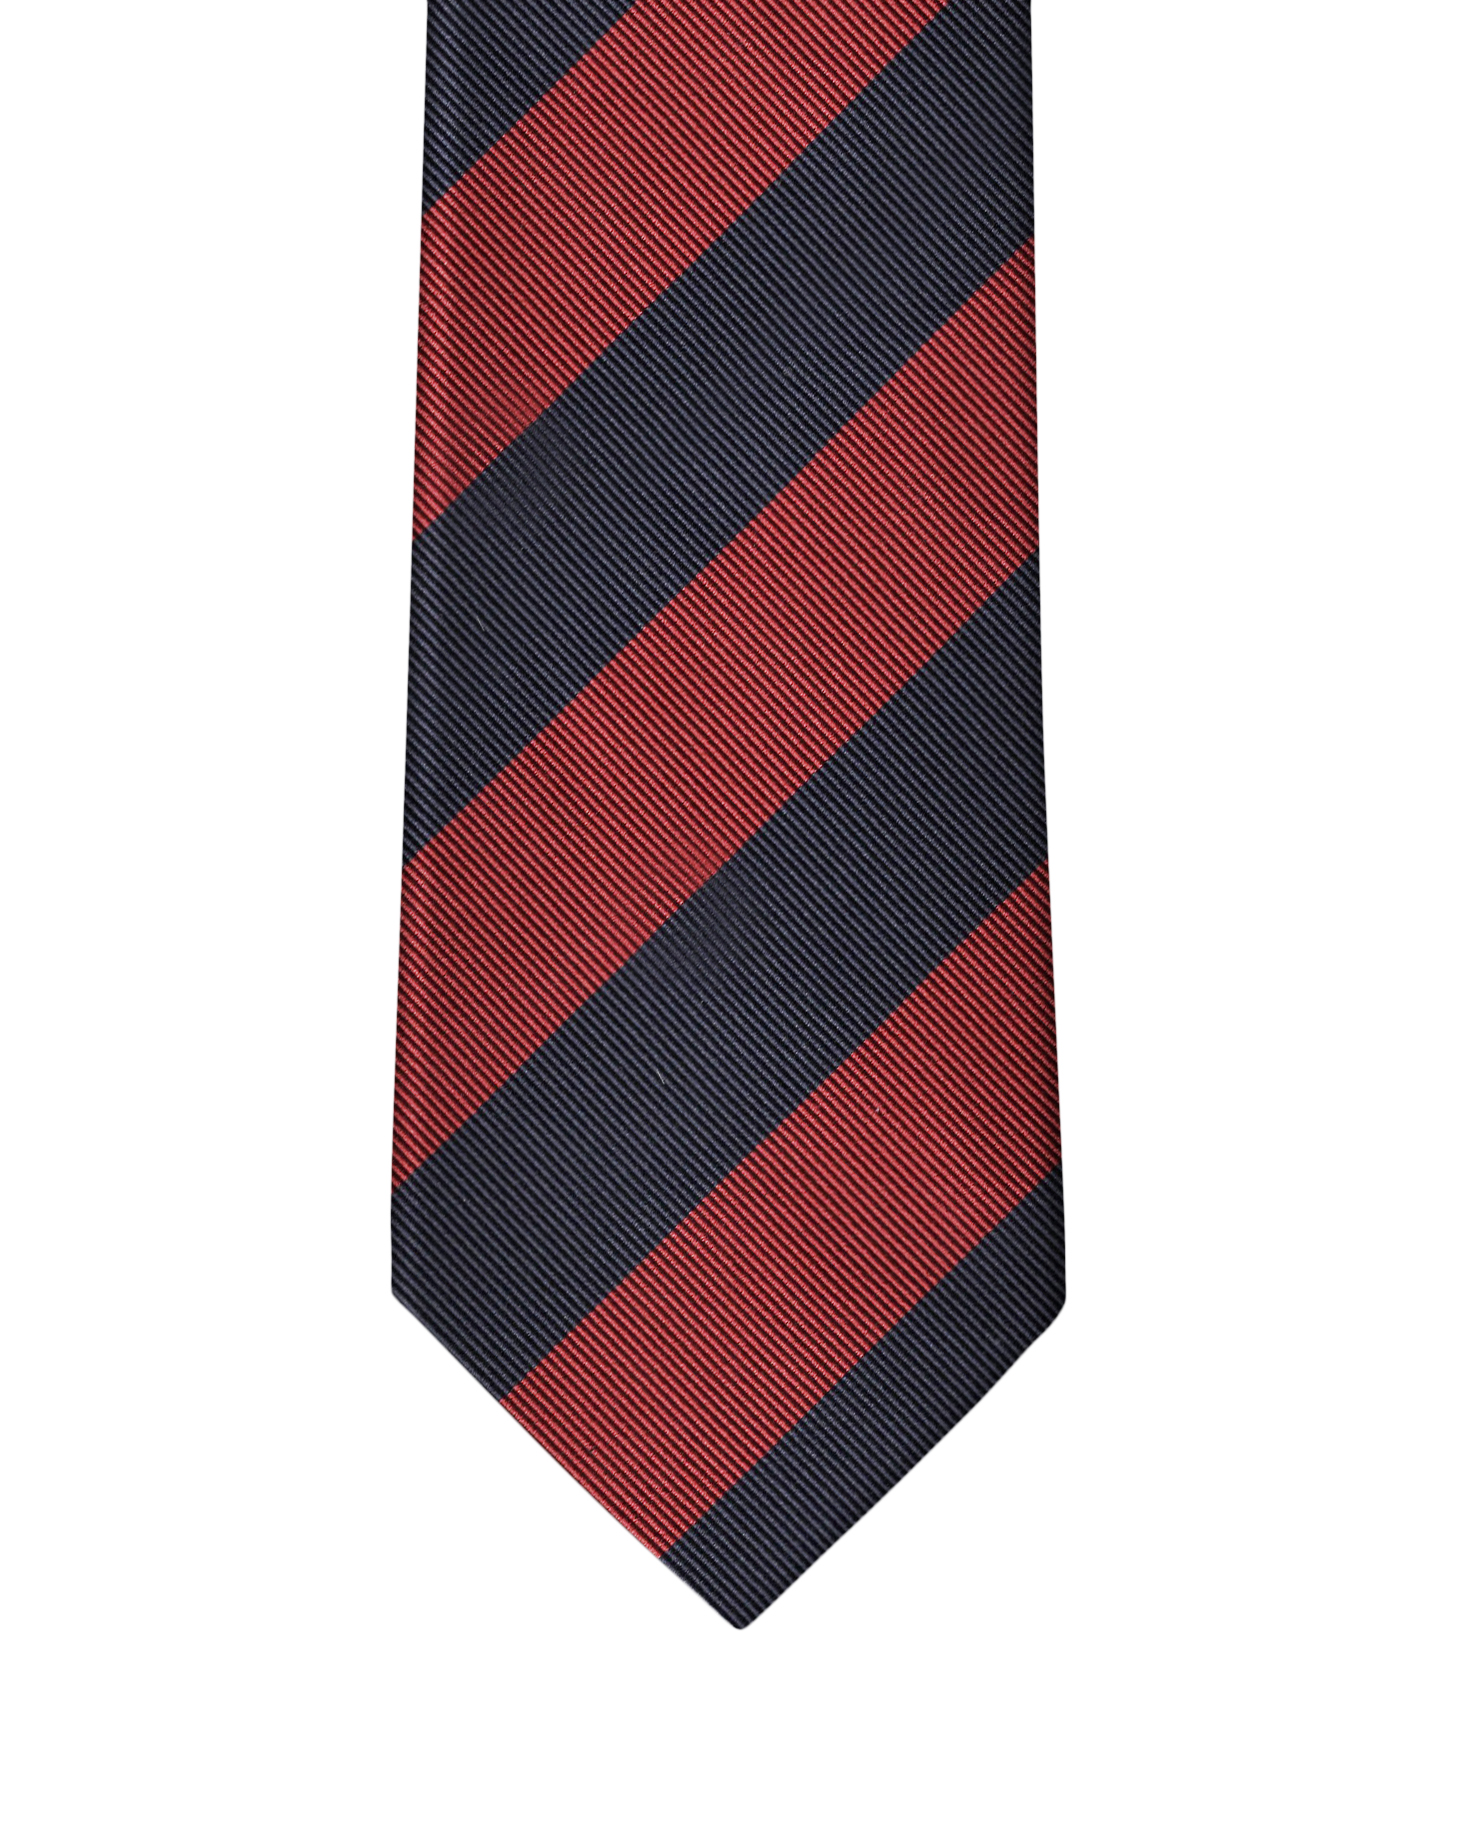 Navy & Wine Two Color Rep Stripe Necktie